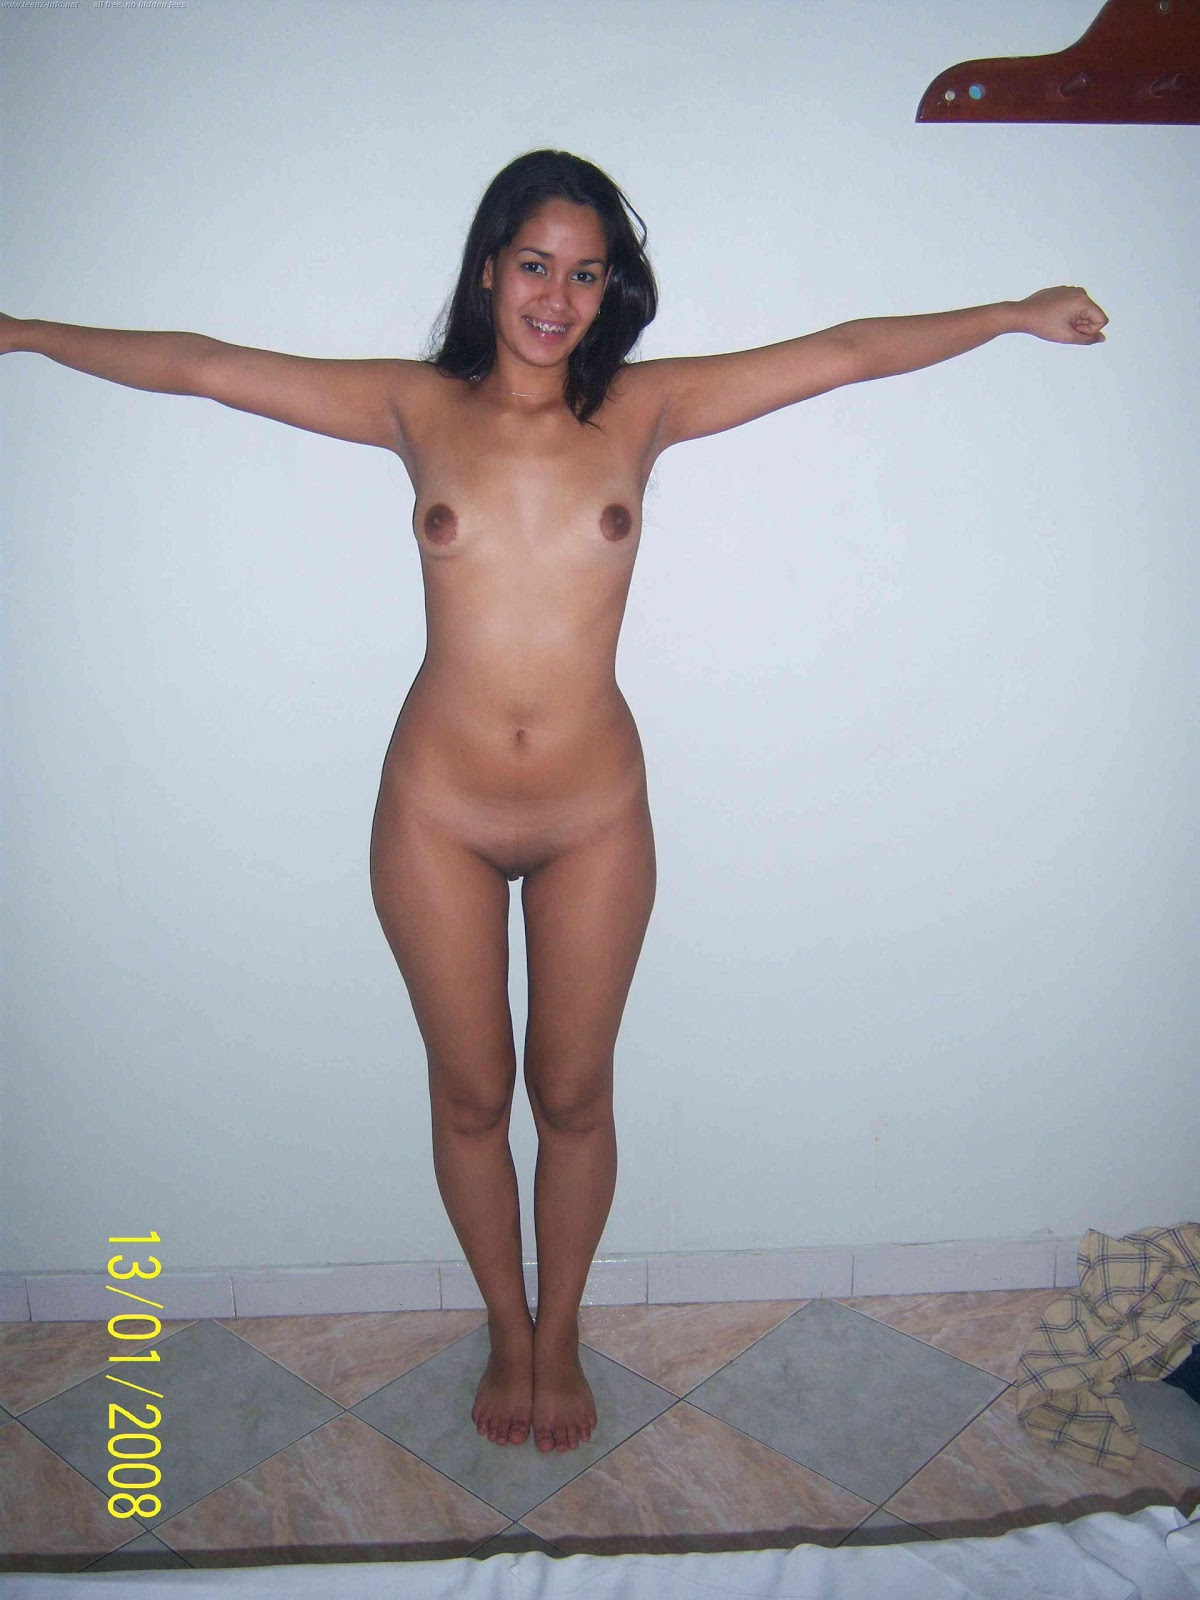 Newzuland girl naked photo